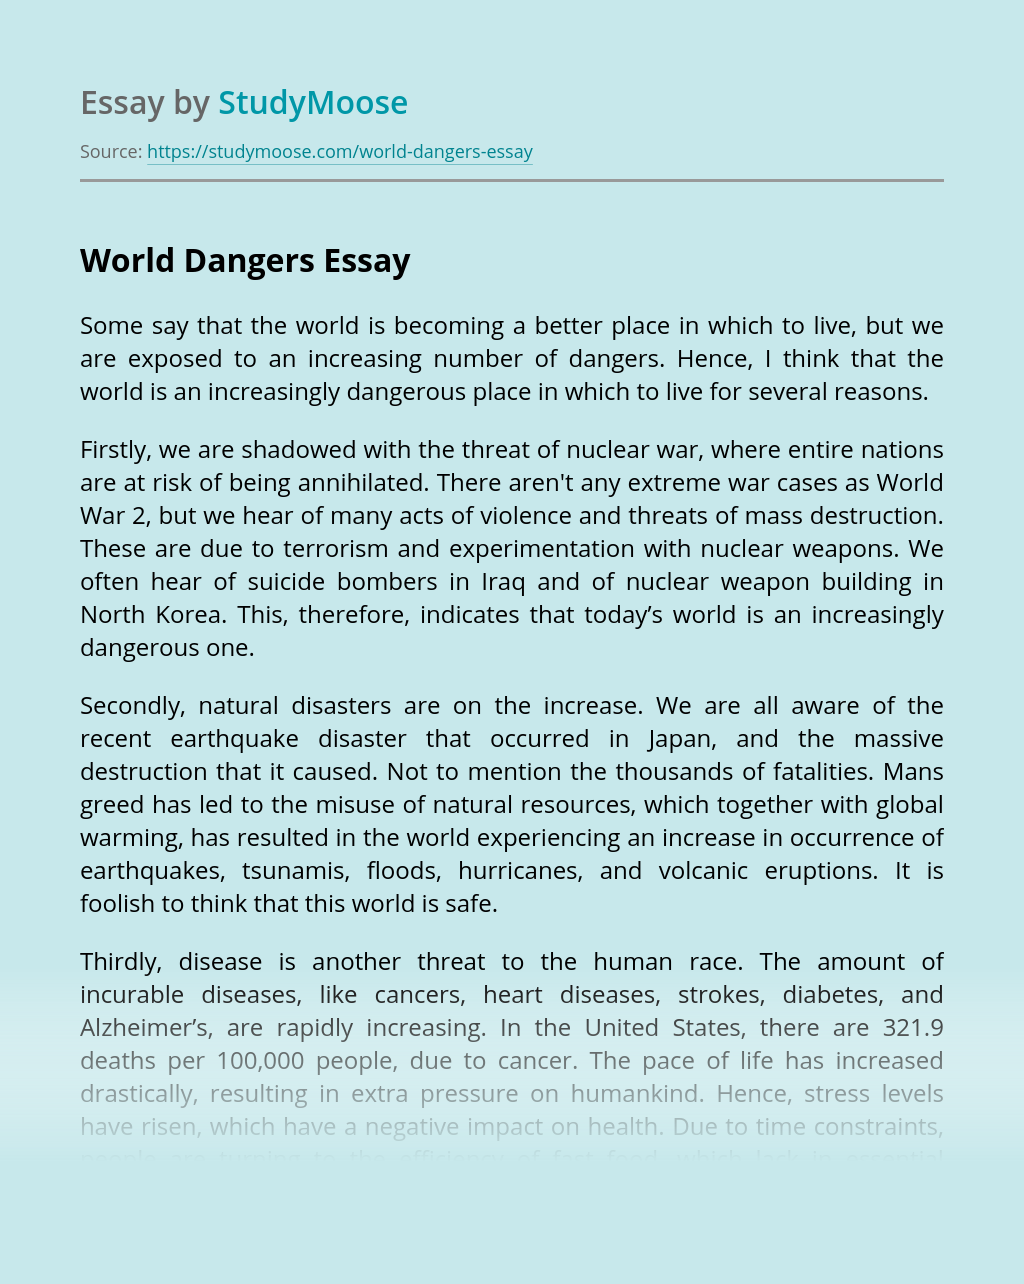 World Dangers